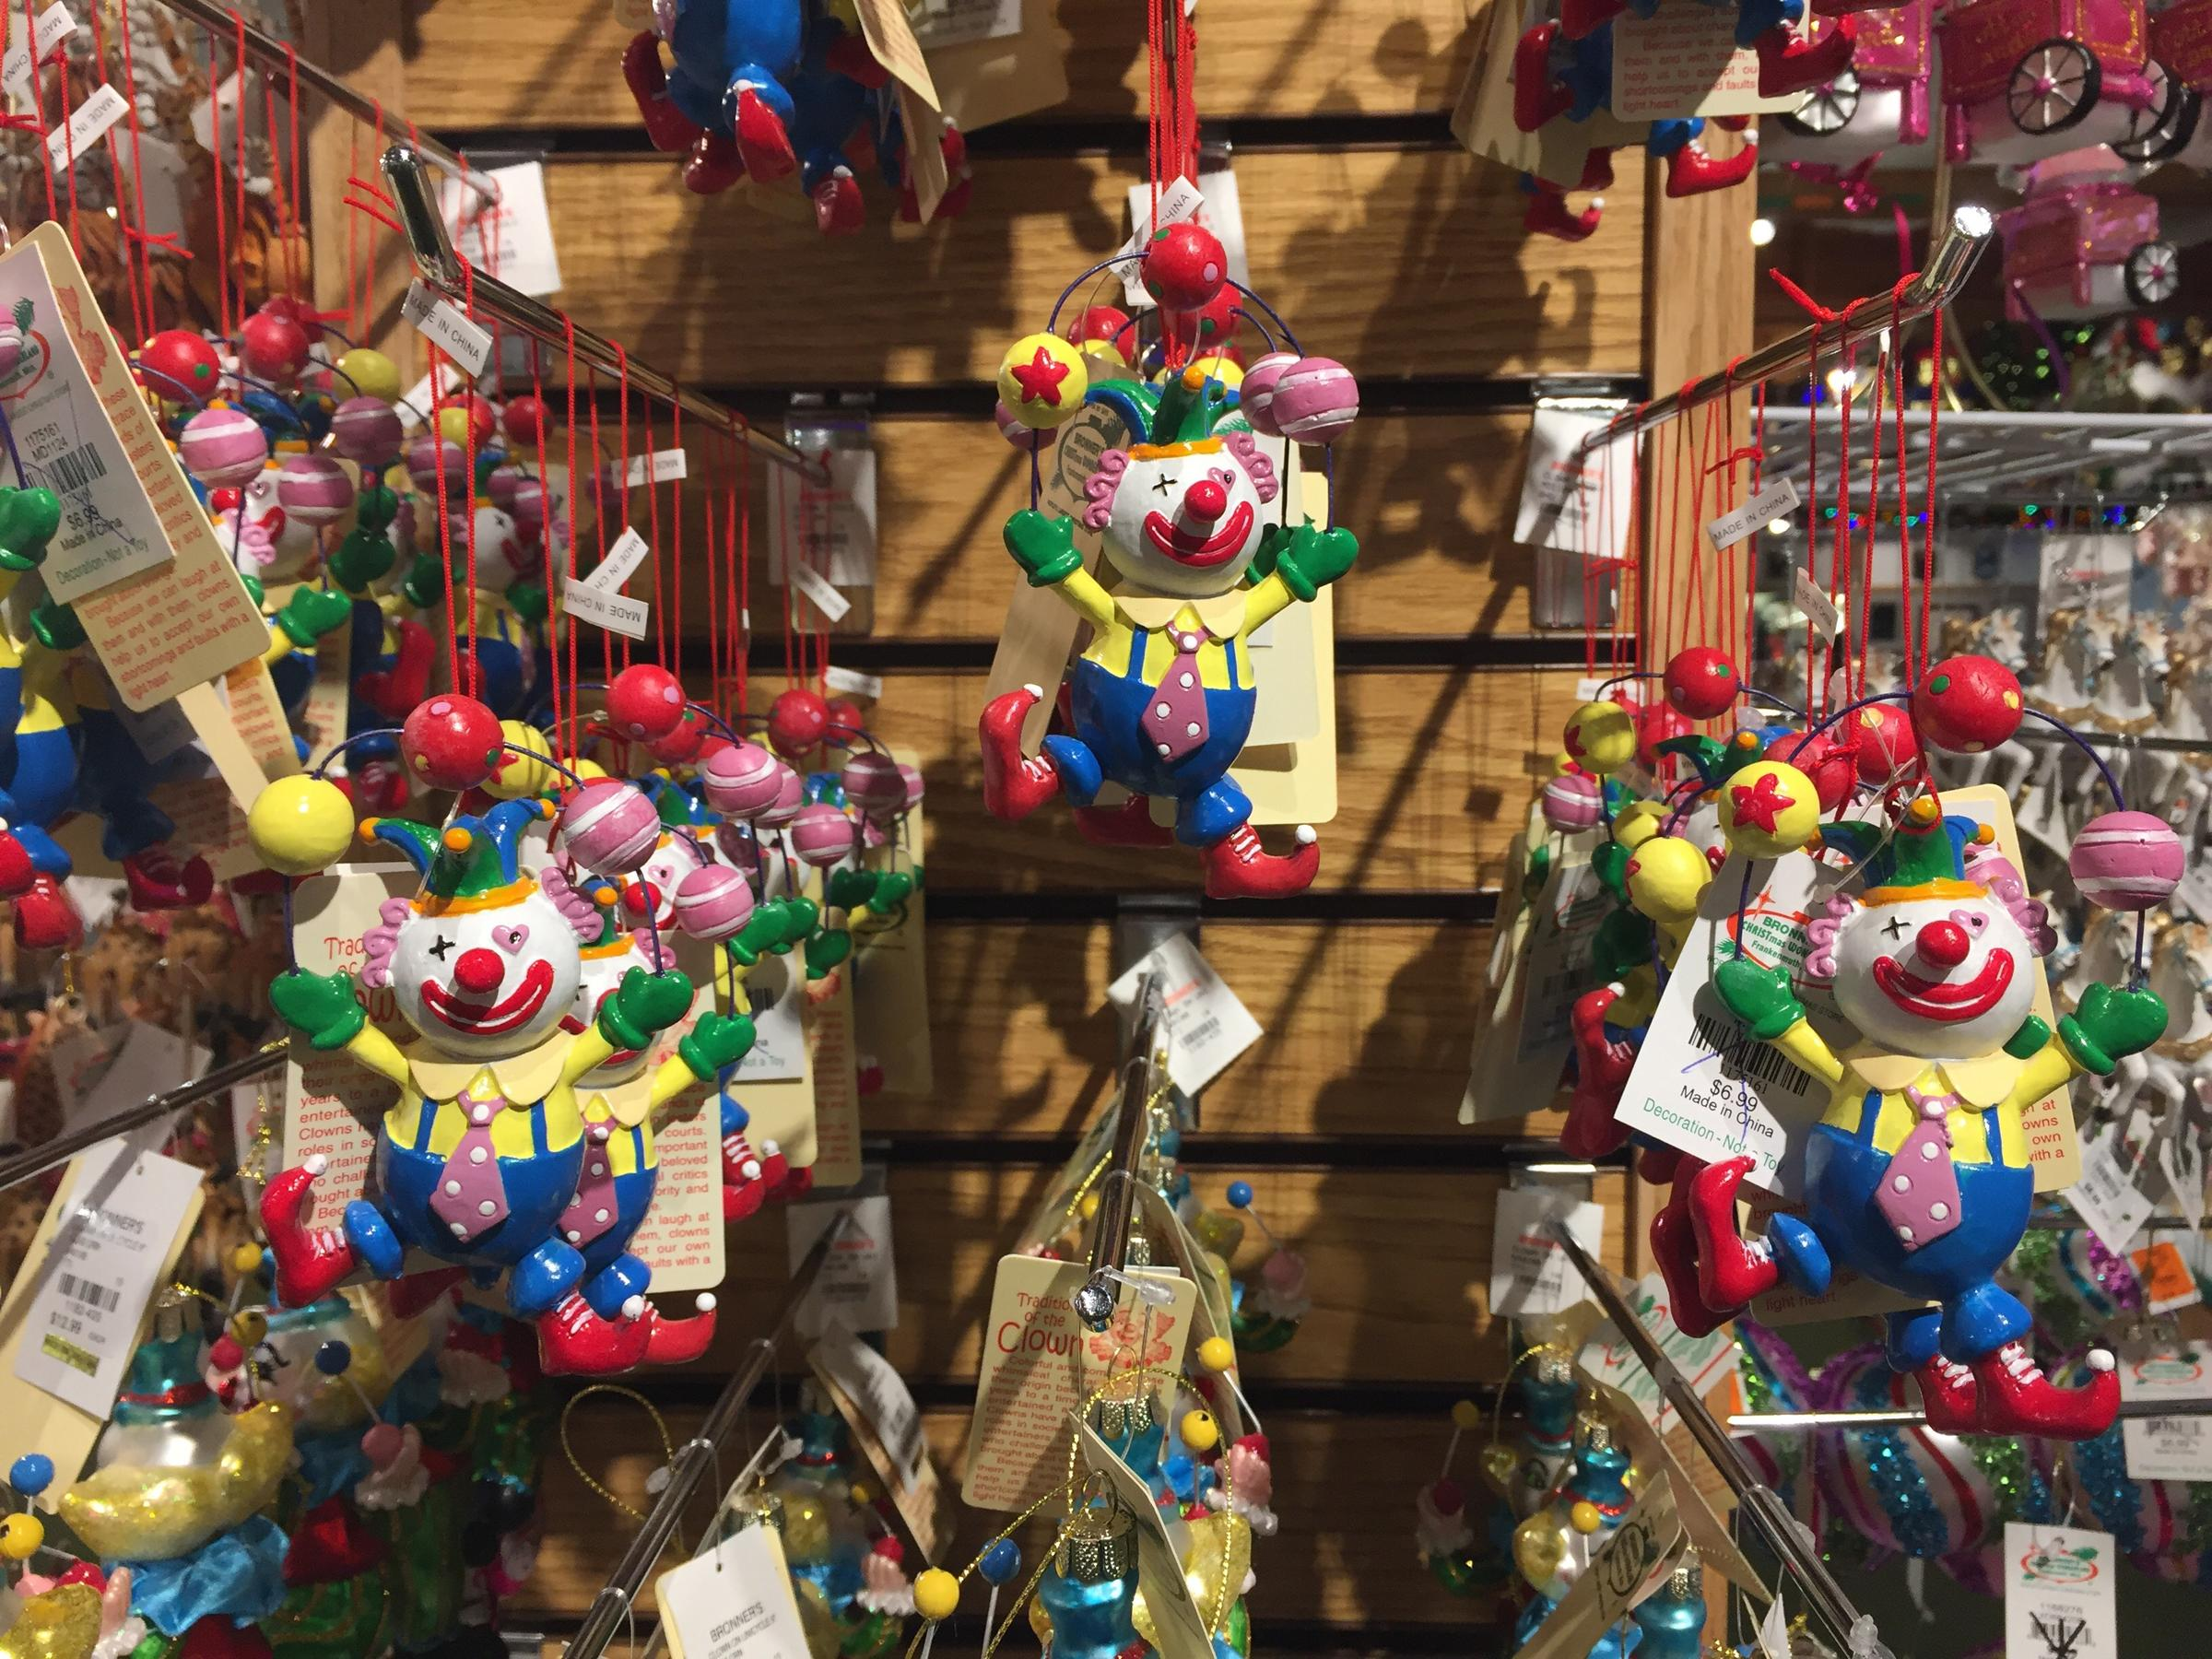 Bronners Christmas Ornaments.In The Middle Of Summer Bronner S Is Still A Christmas